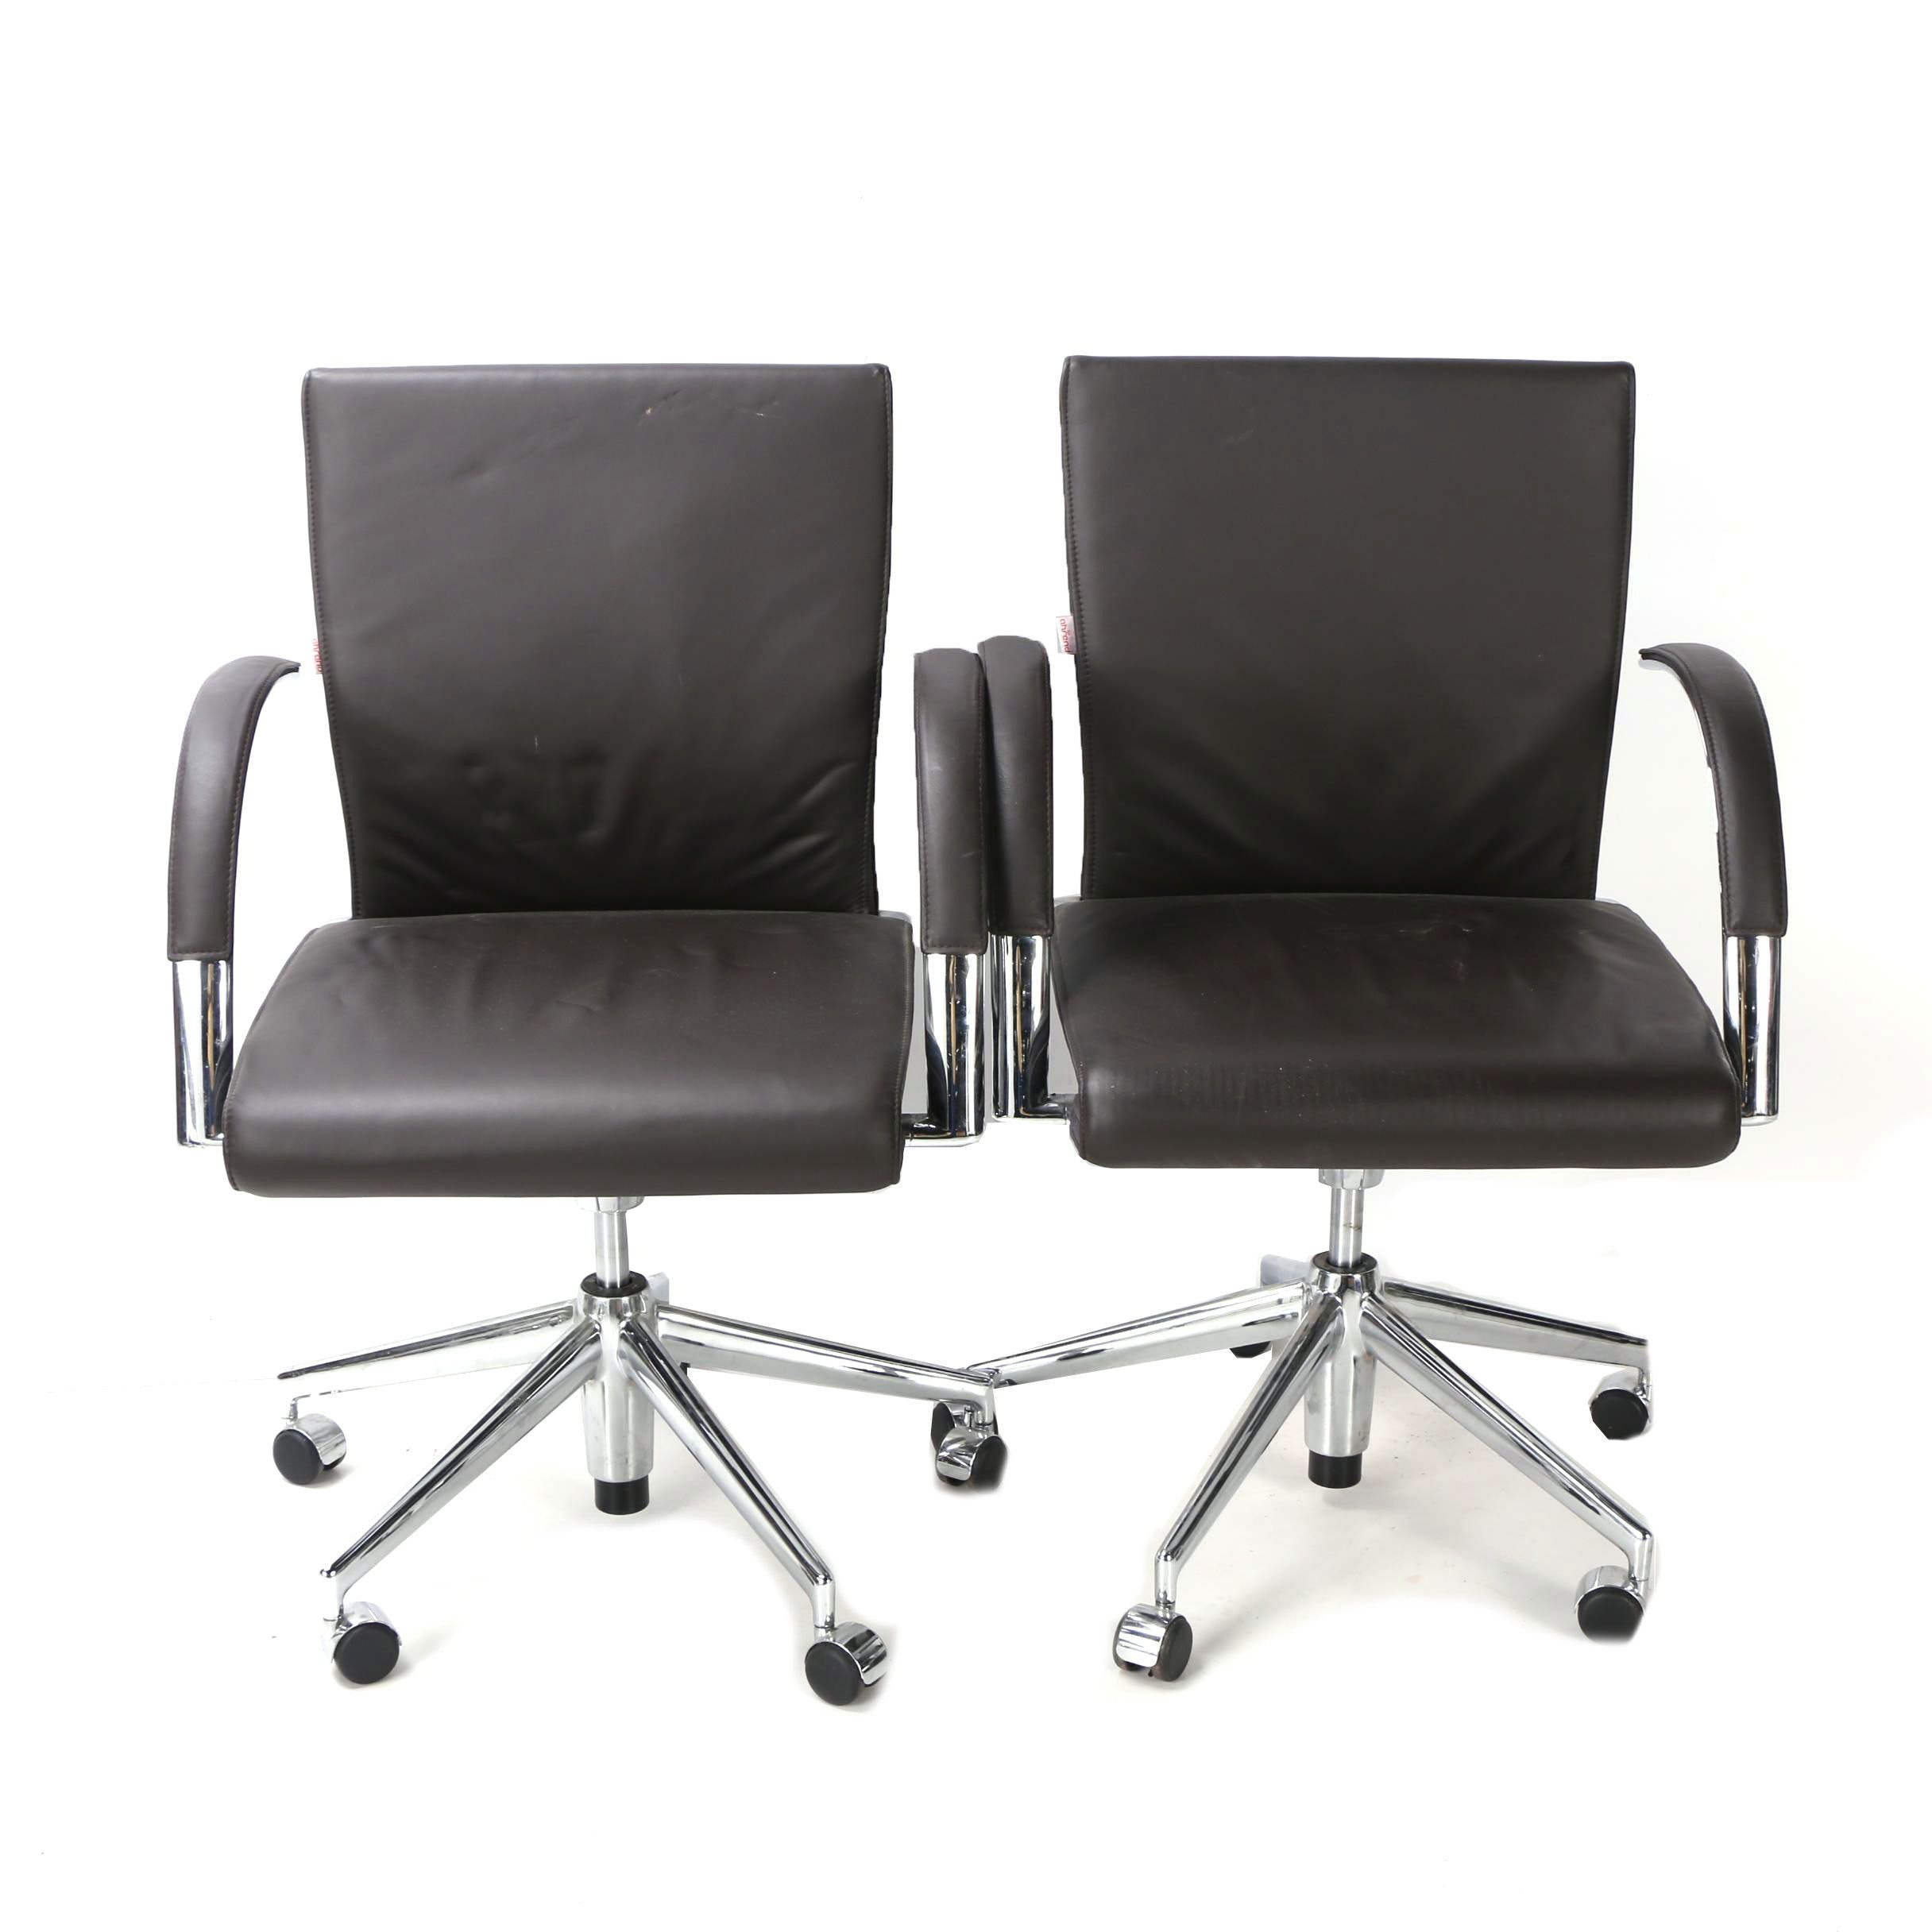 Black Faux Leather Office Chairs by Sigurd Rothe for Ahrend